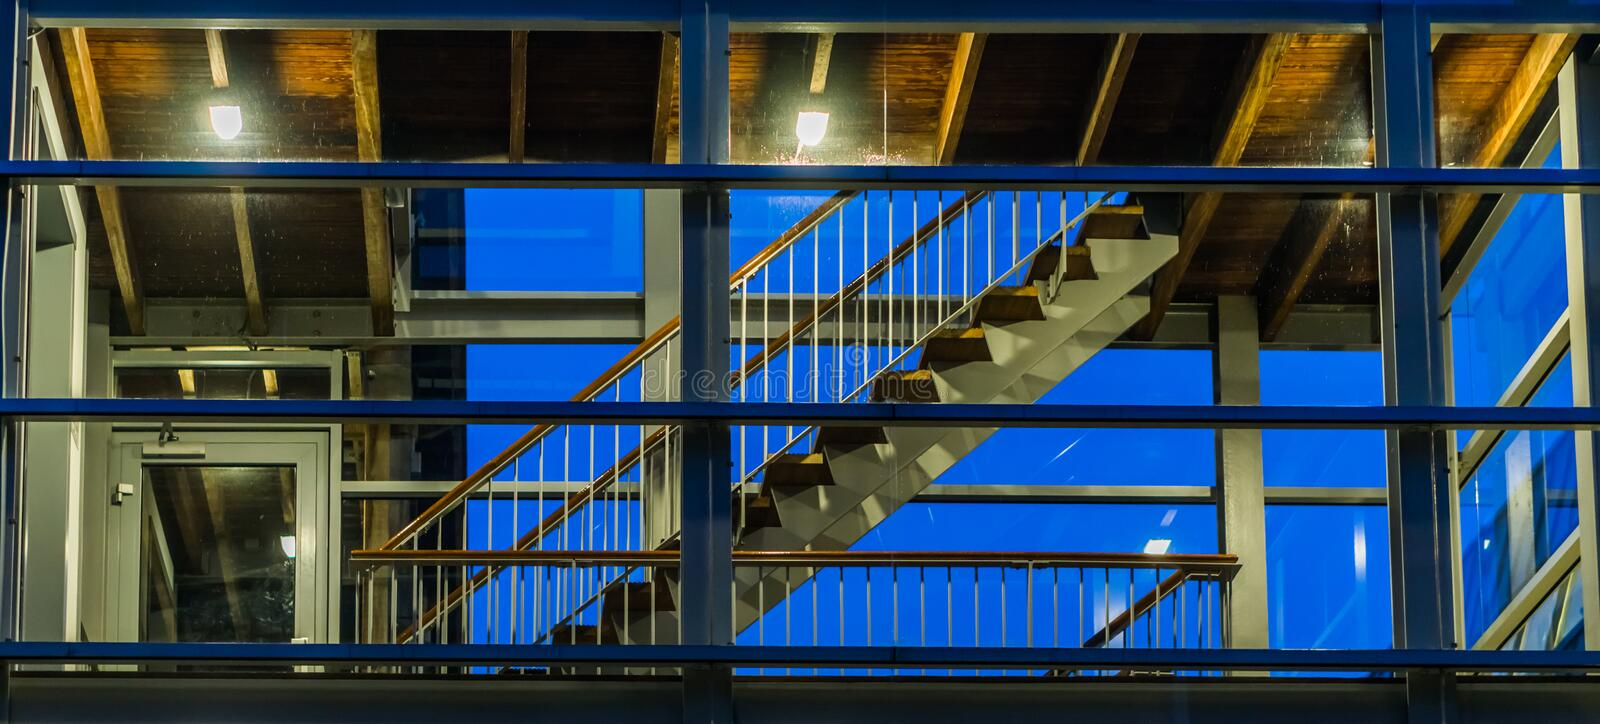 Stairs in a modern staircase building with glass windows, lighted at night, dutch architecture stock photo